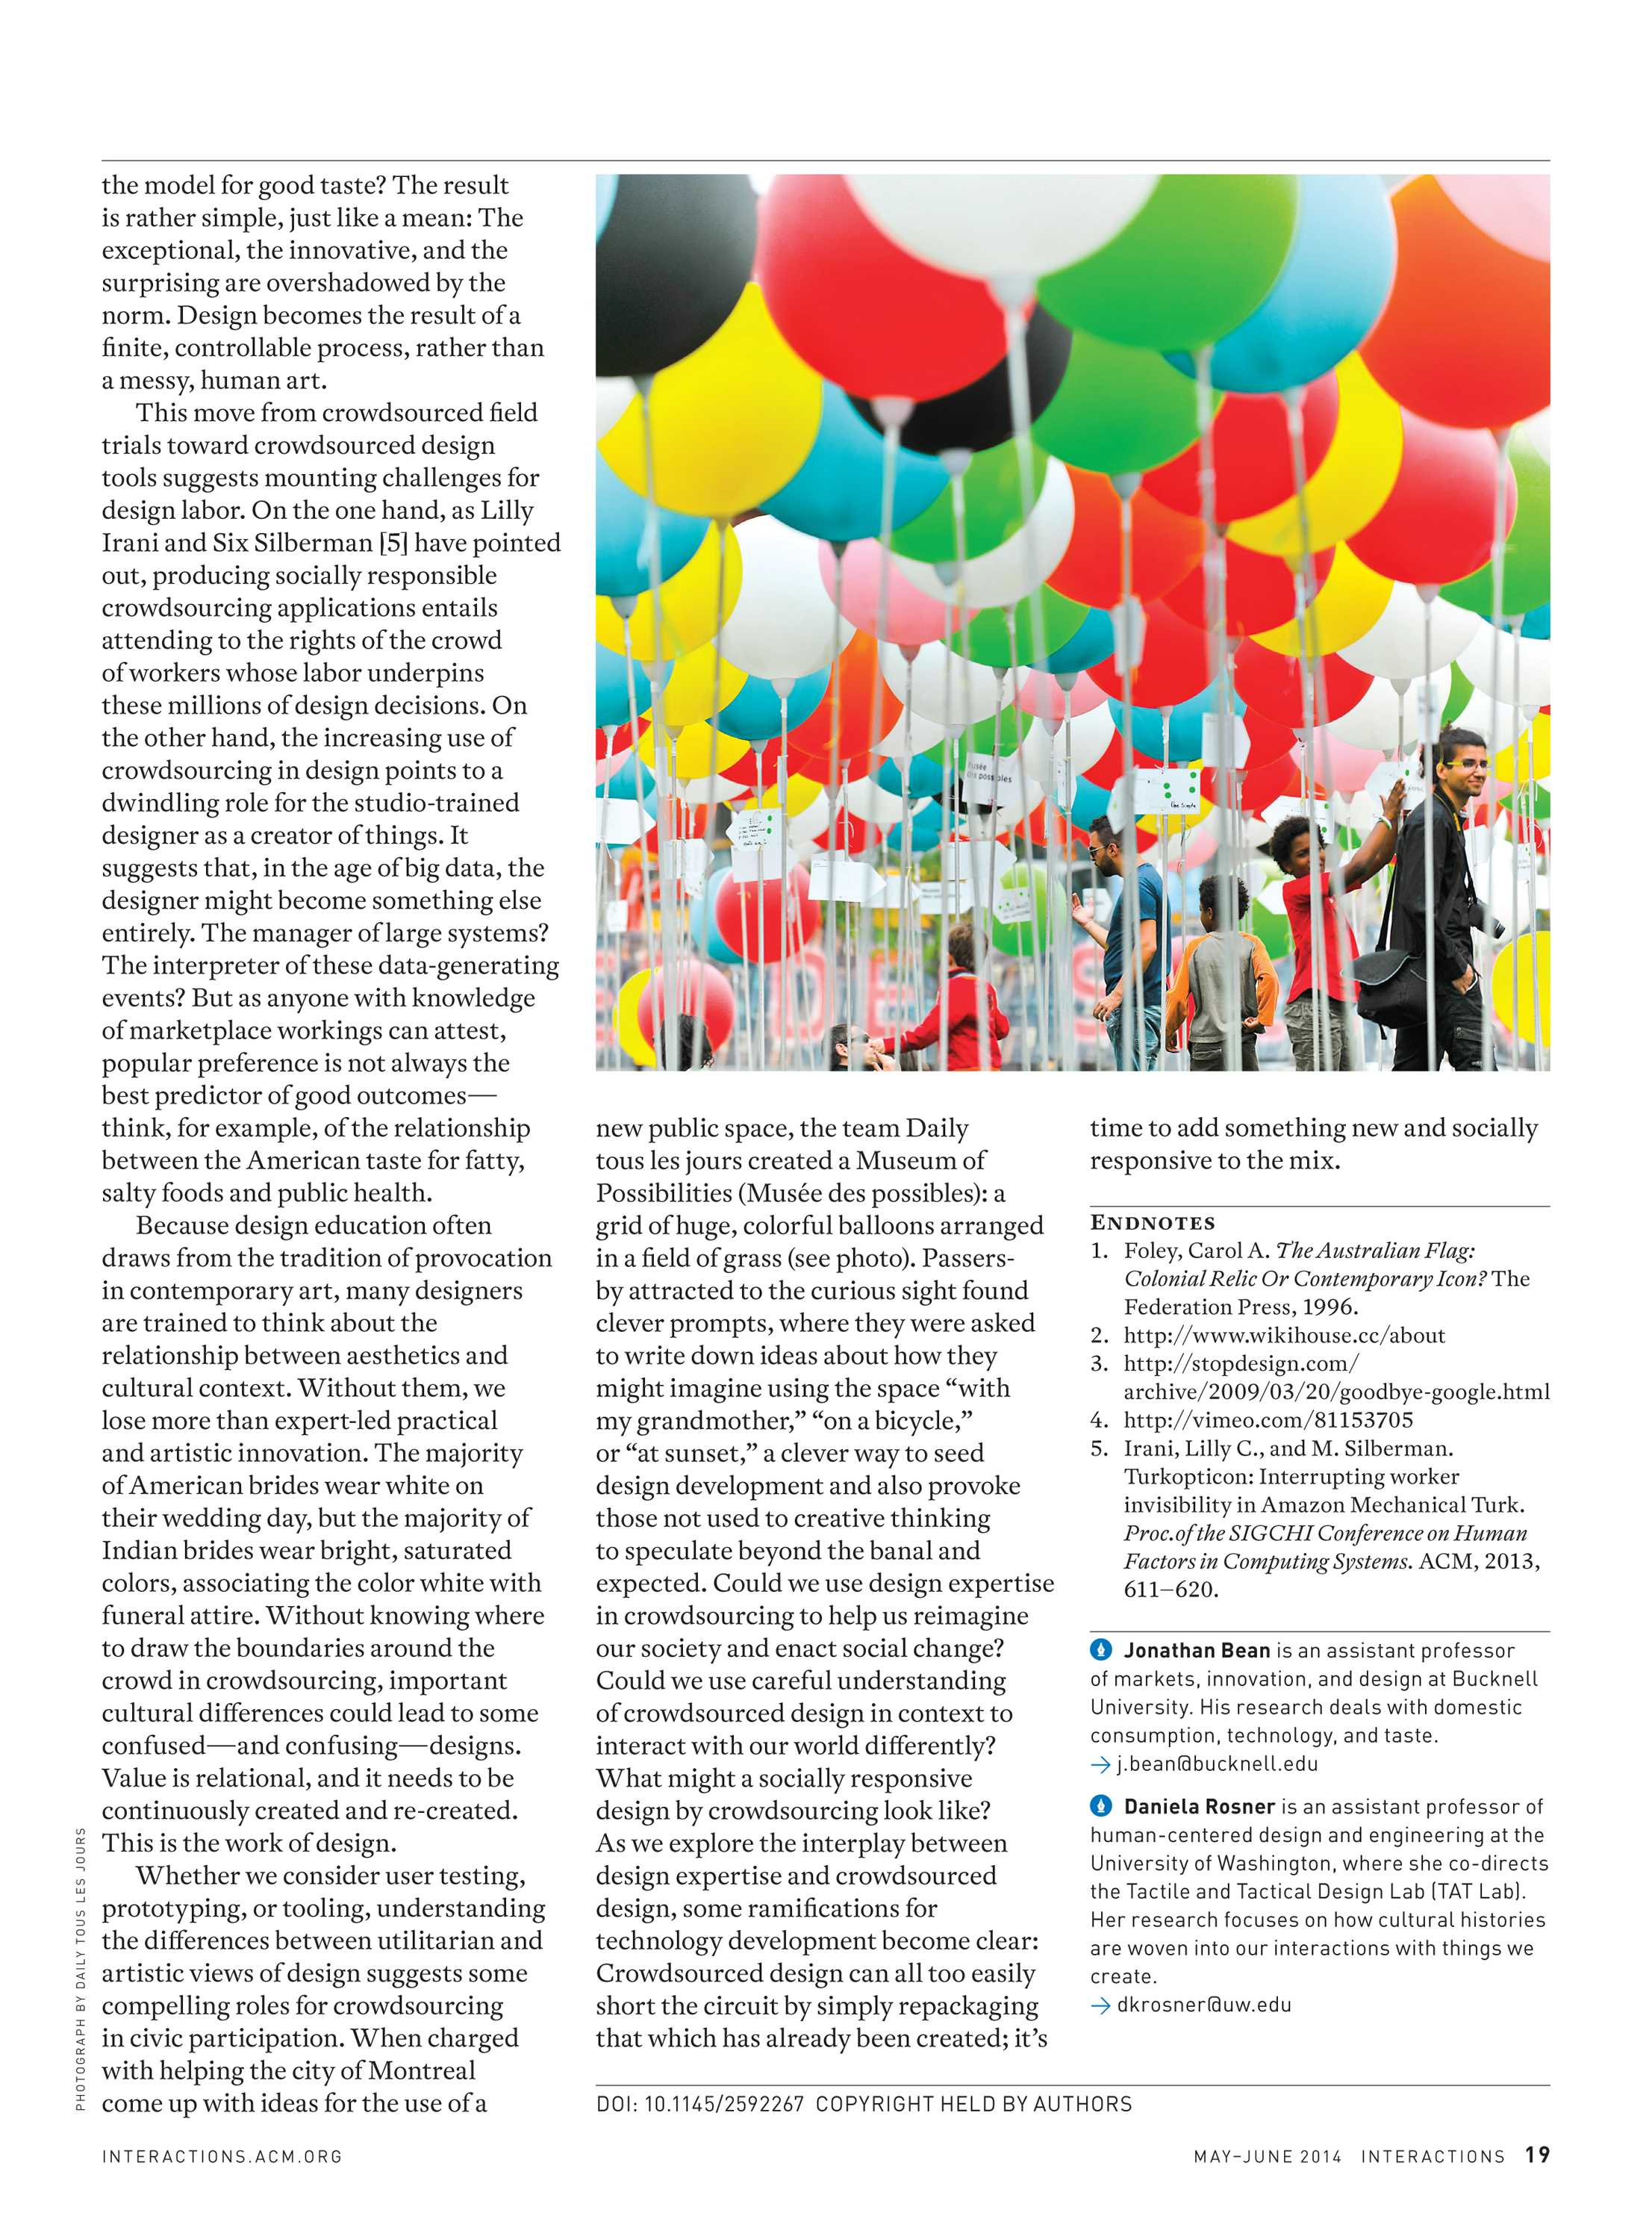 Interactions - May/June 2014 - page 19